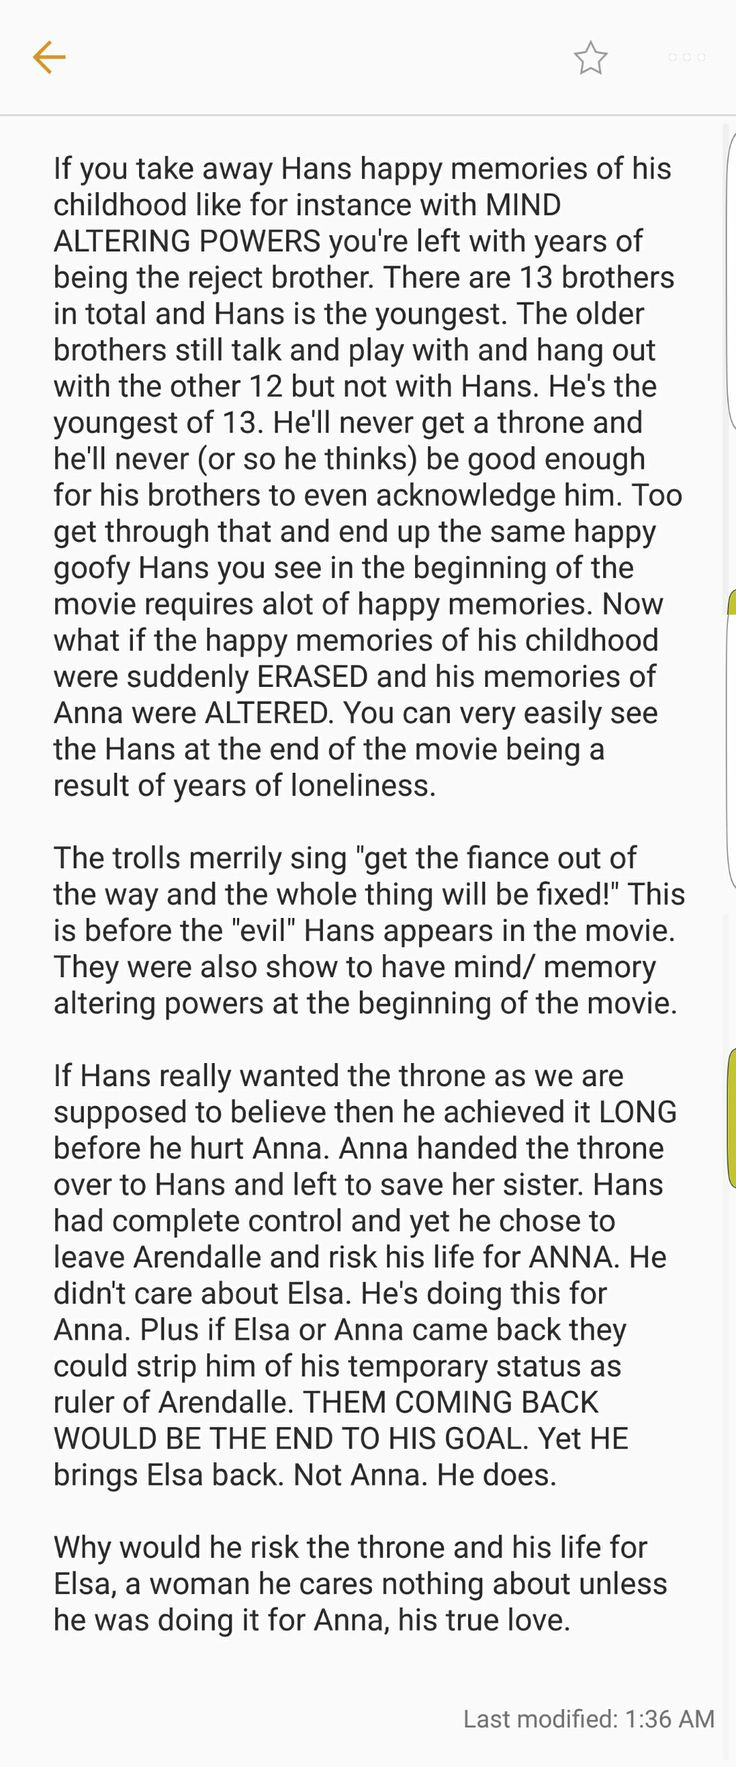 Hans in Frozen. A deeper look into the Film Theory theory.